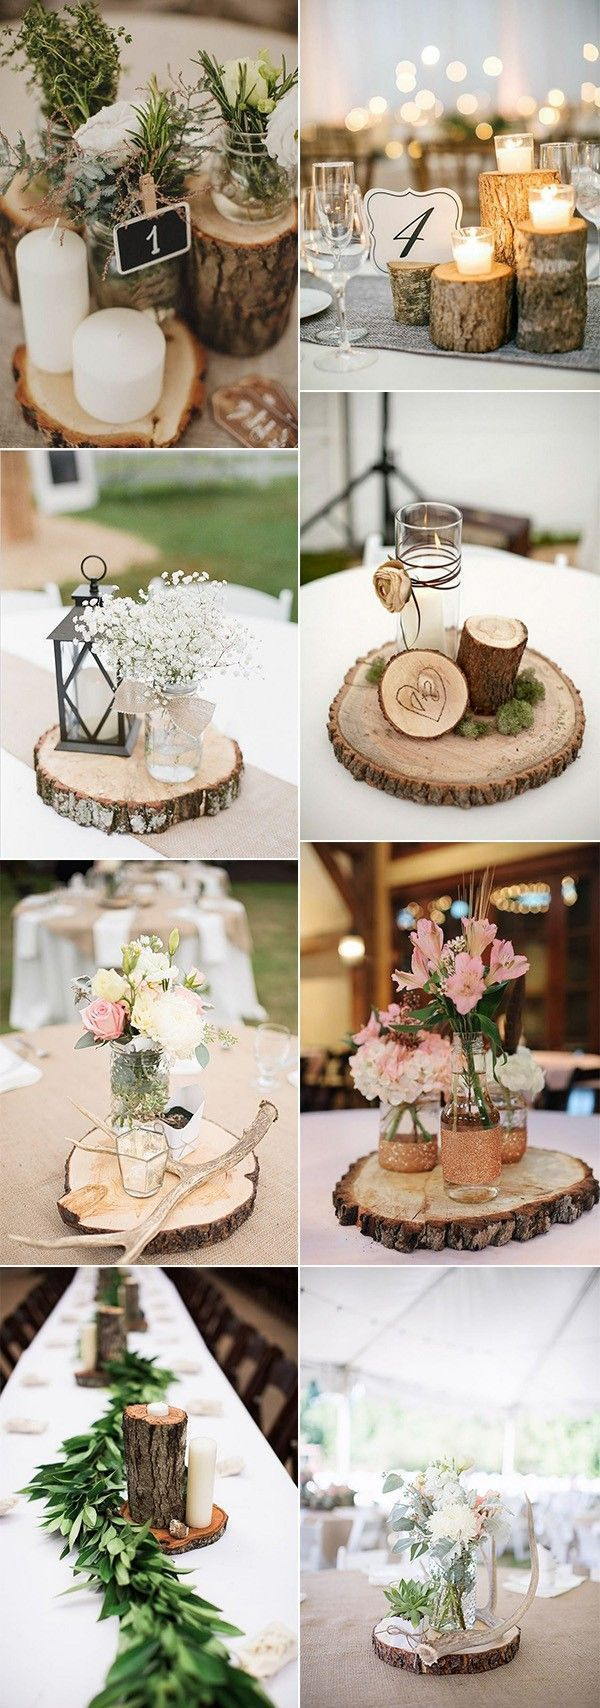 28 ideas for rustic wedding decoration with tree stumps – Country Wedding Dresses, Decor and Accessories